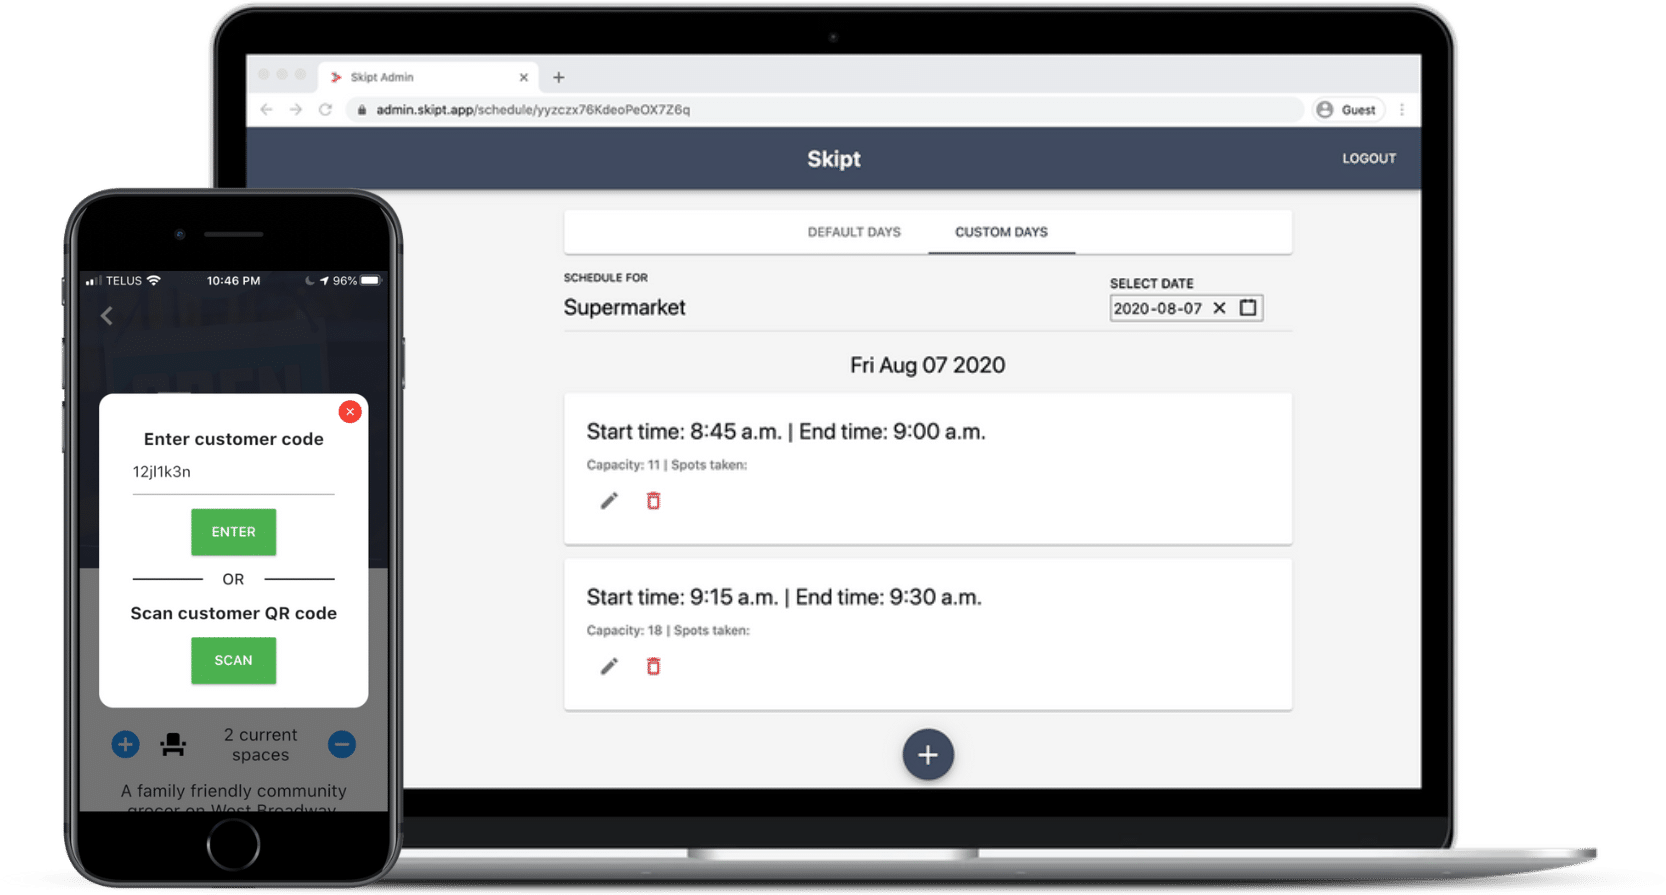 Mockup containing both admin Skipt app and Skipt website